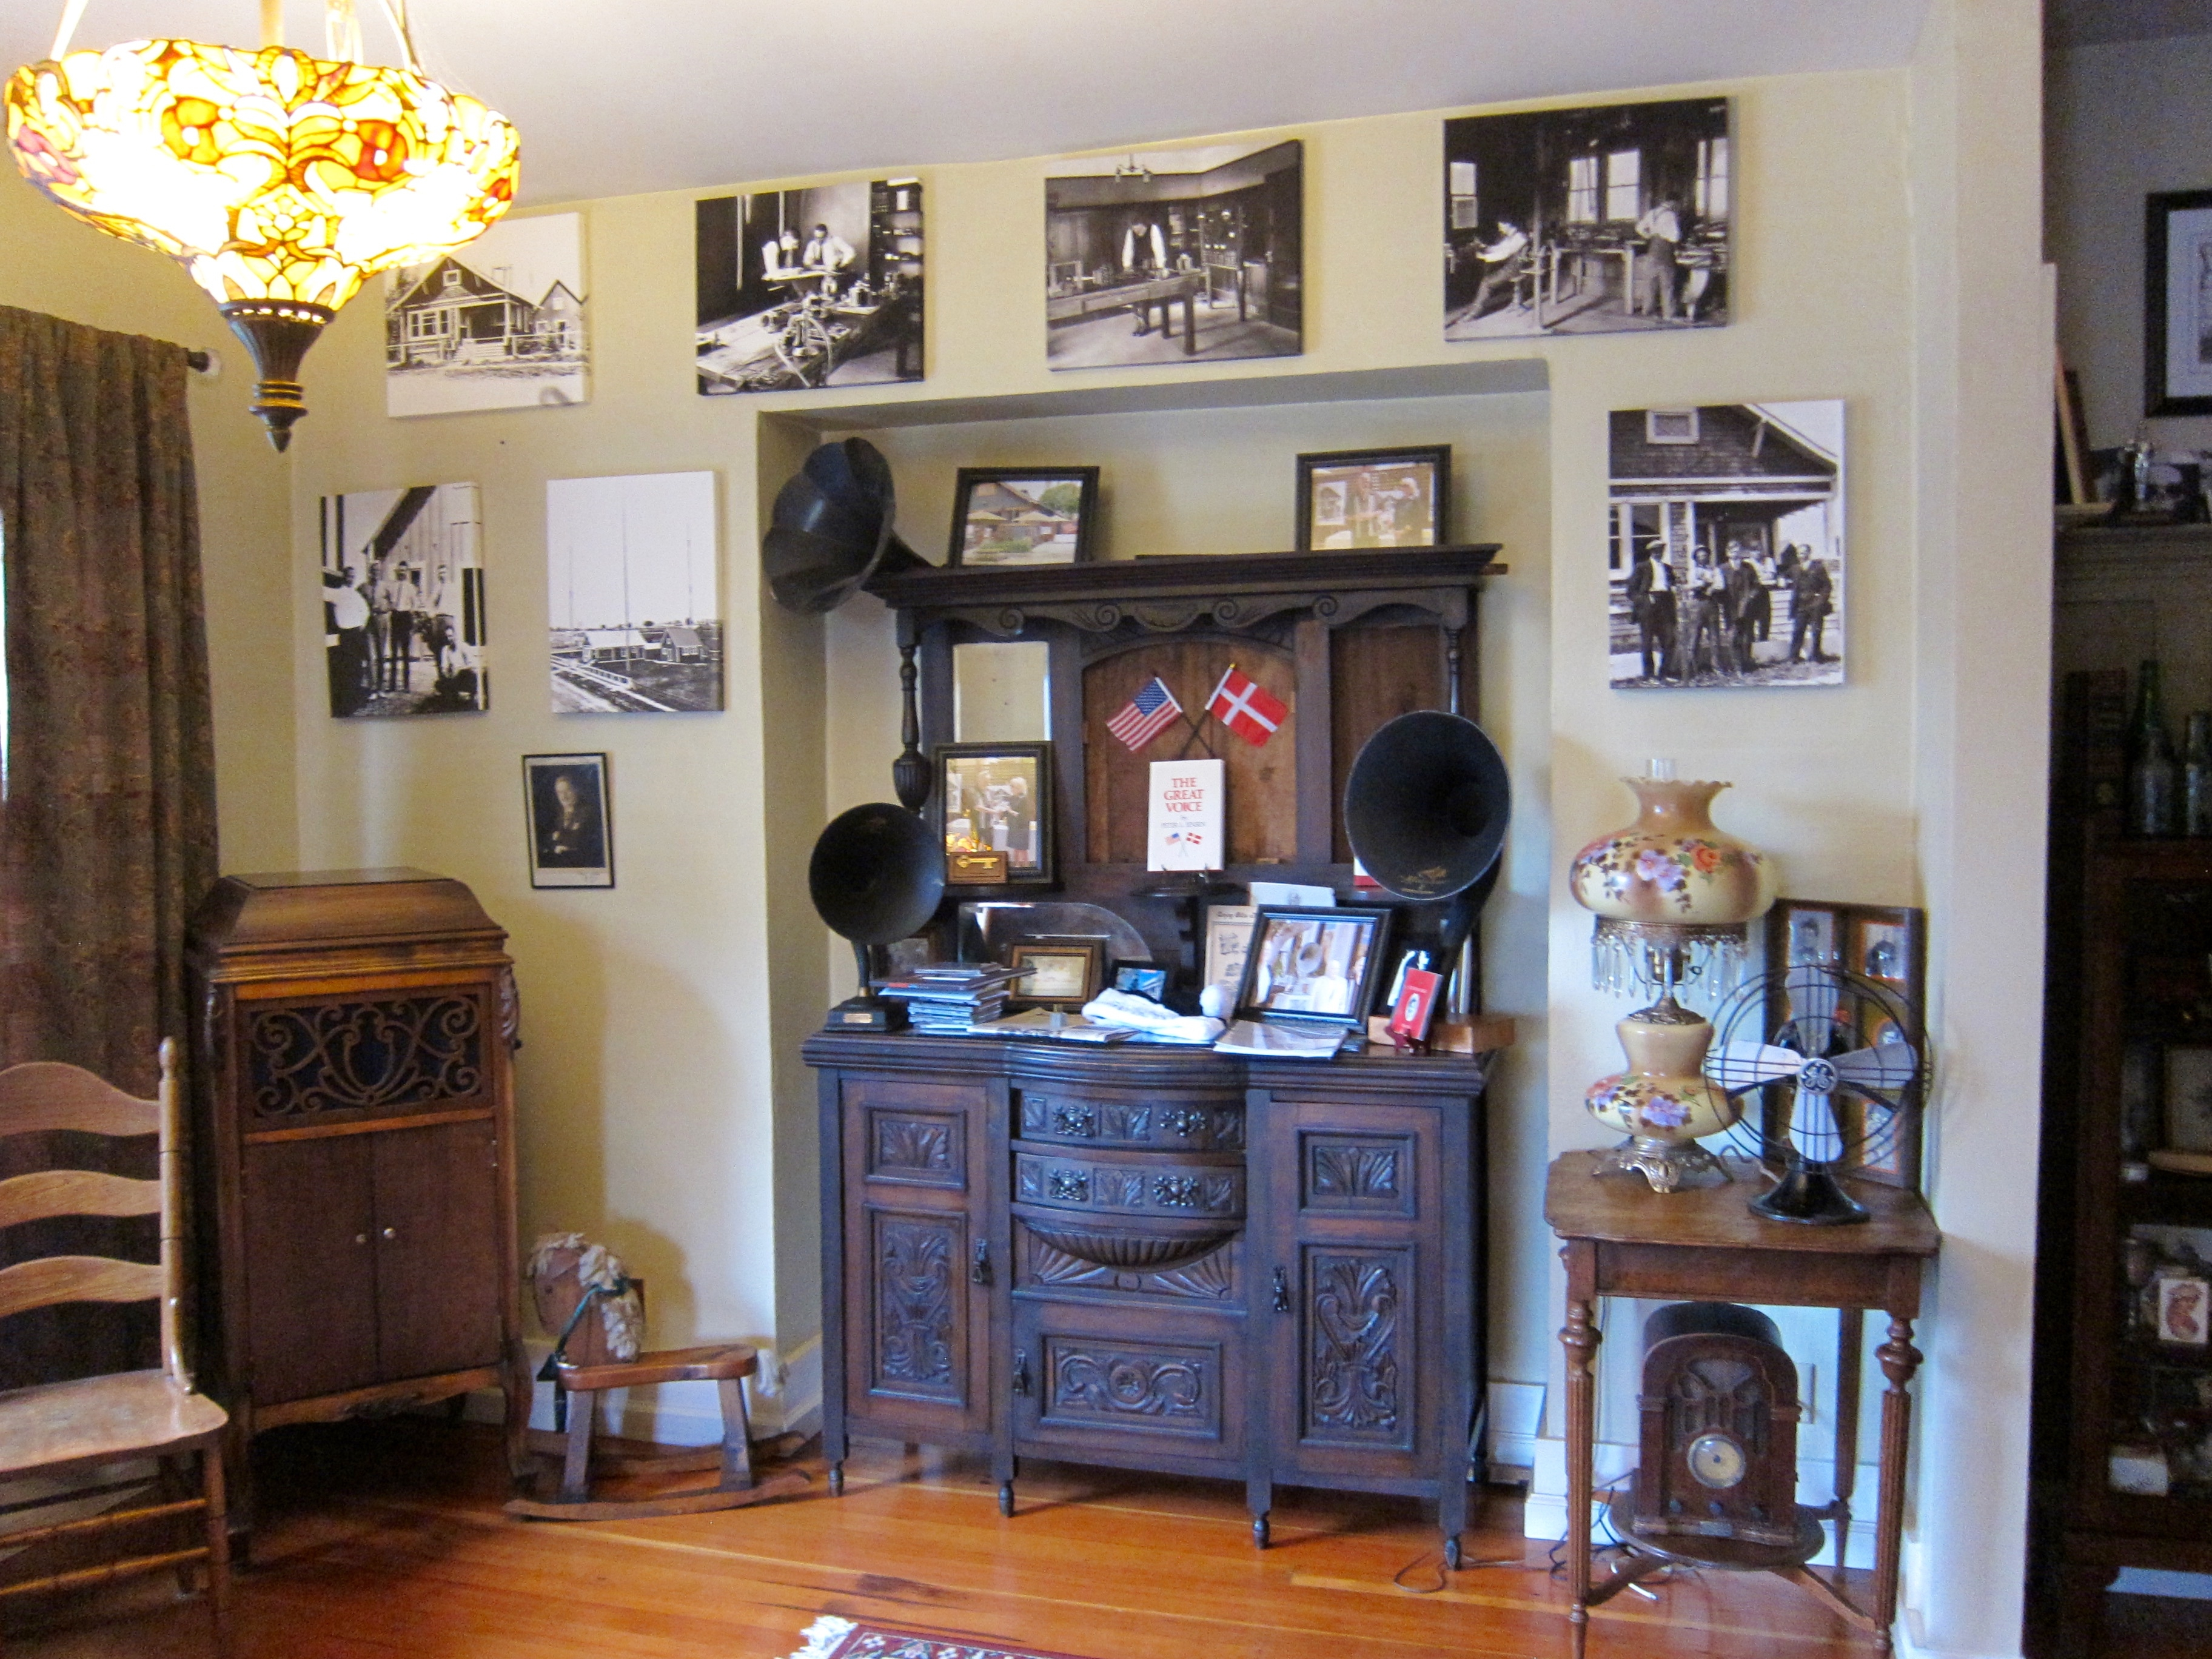 1606 F Street - Birthplace of the Loudspeaker and the Magnavox Corp. - Interior